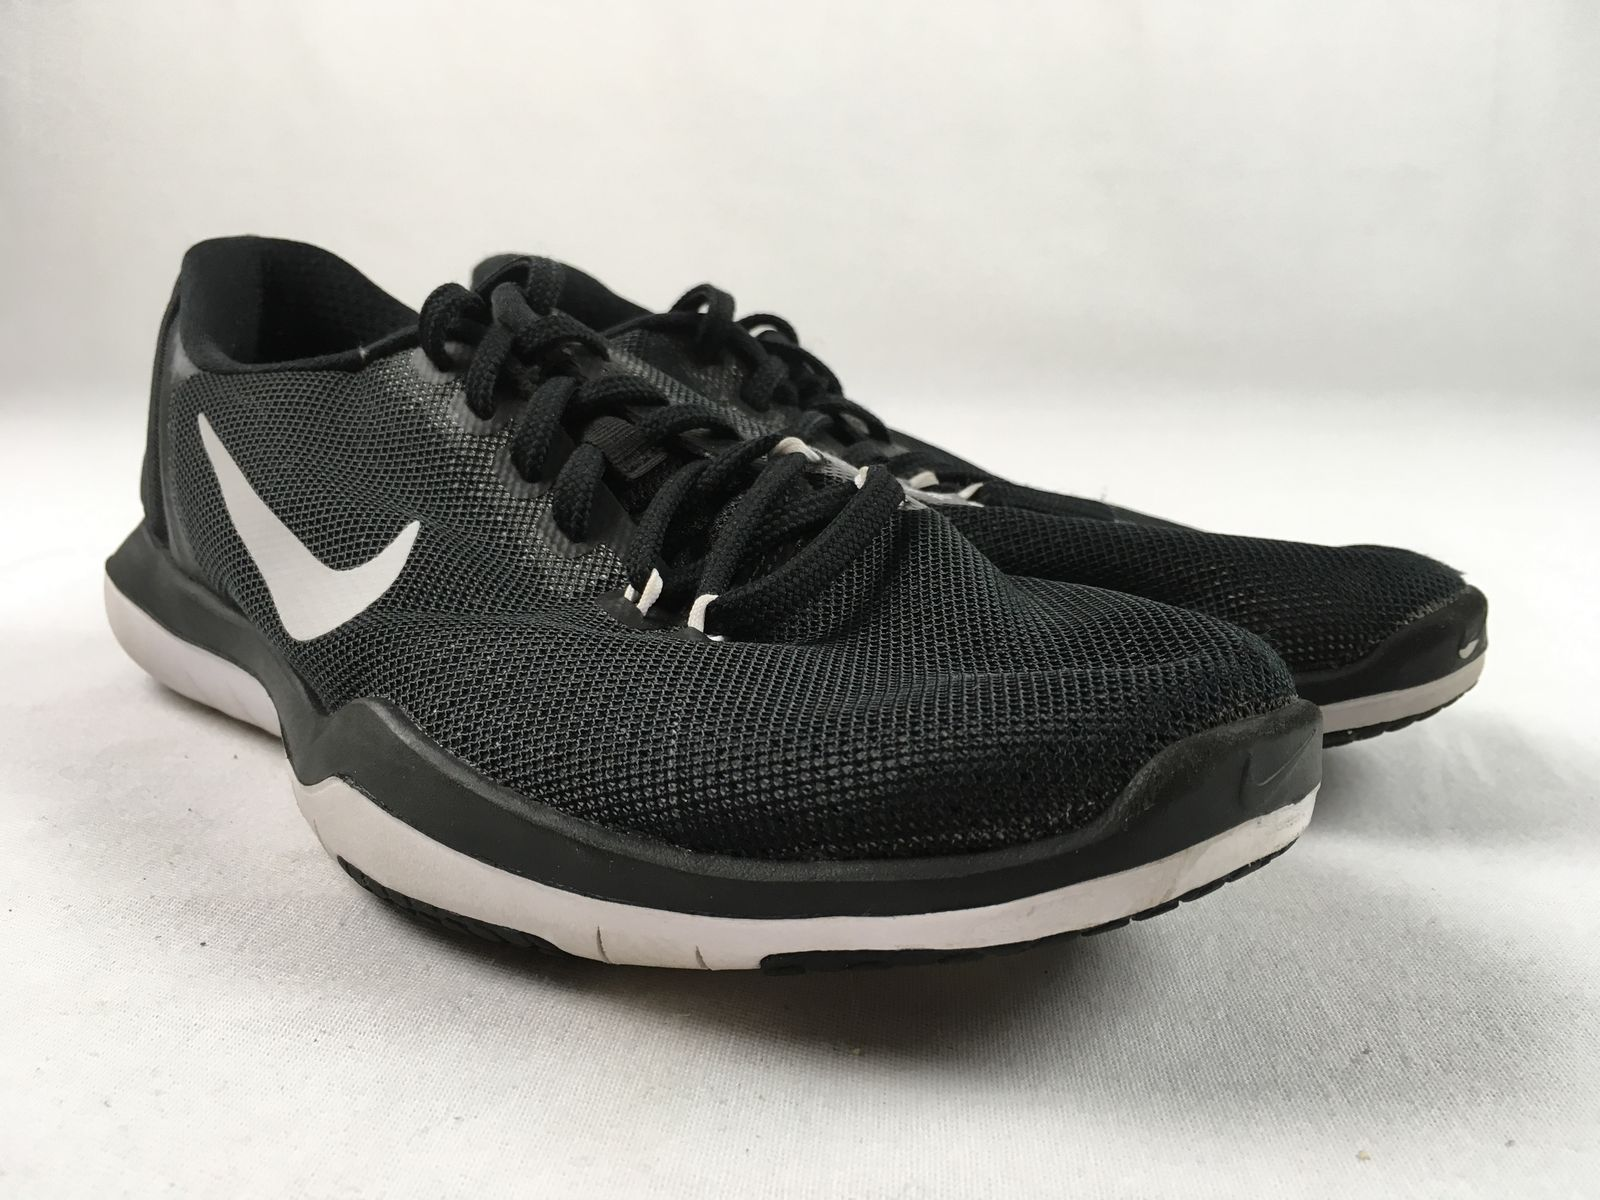 bc8d73eb408006 Details about Nike Flywire - Black Running